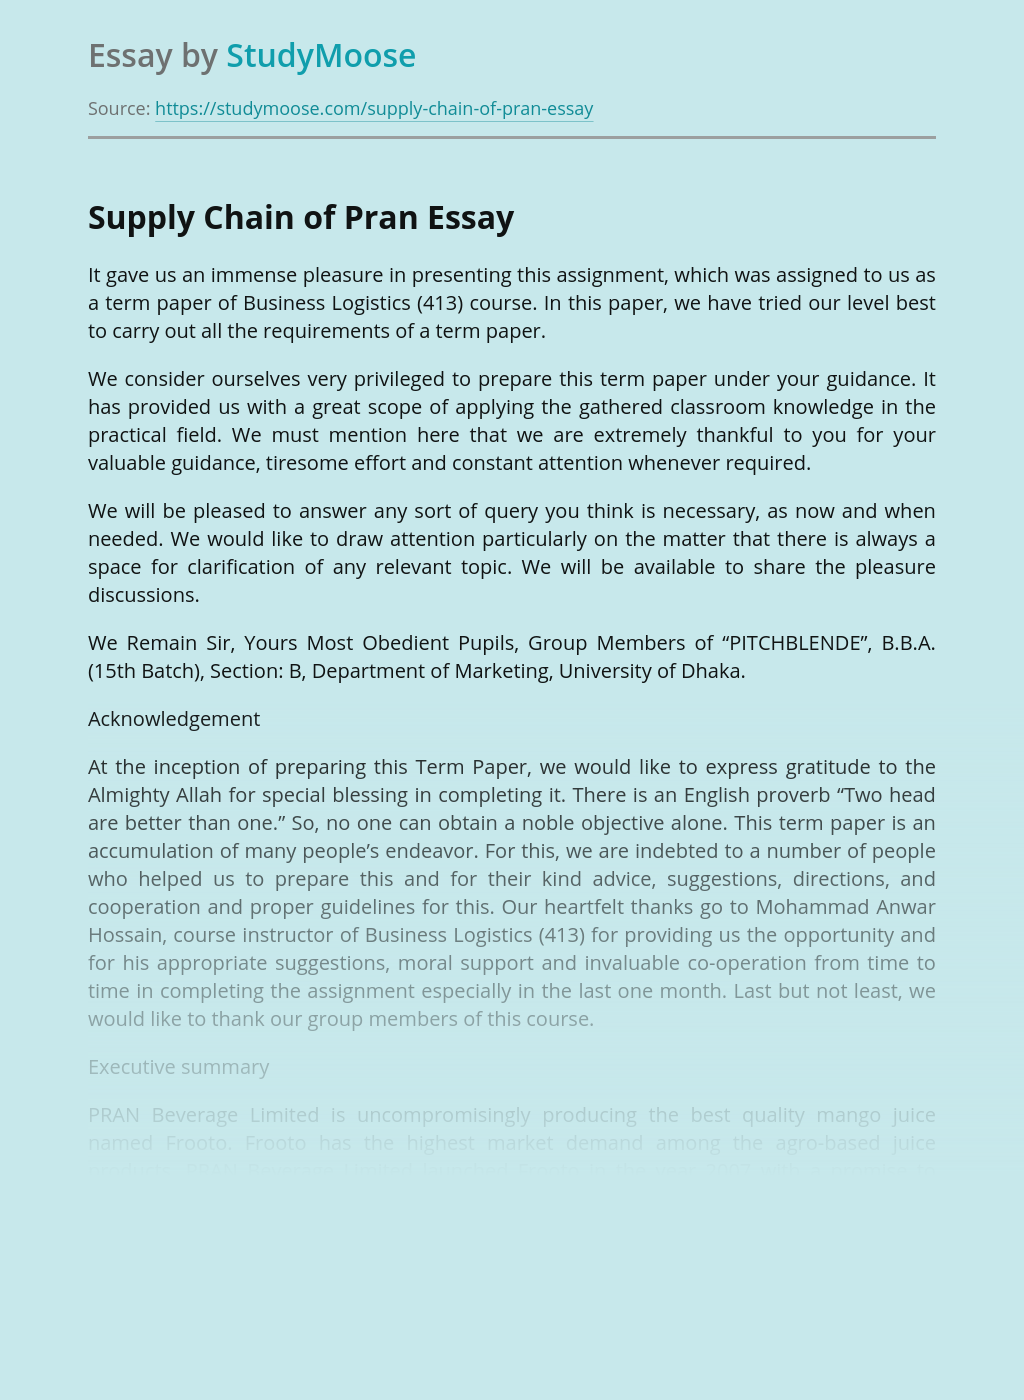 Supply Chain of Pran